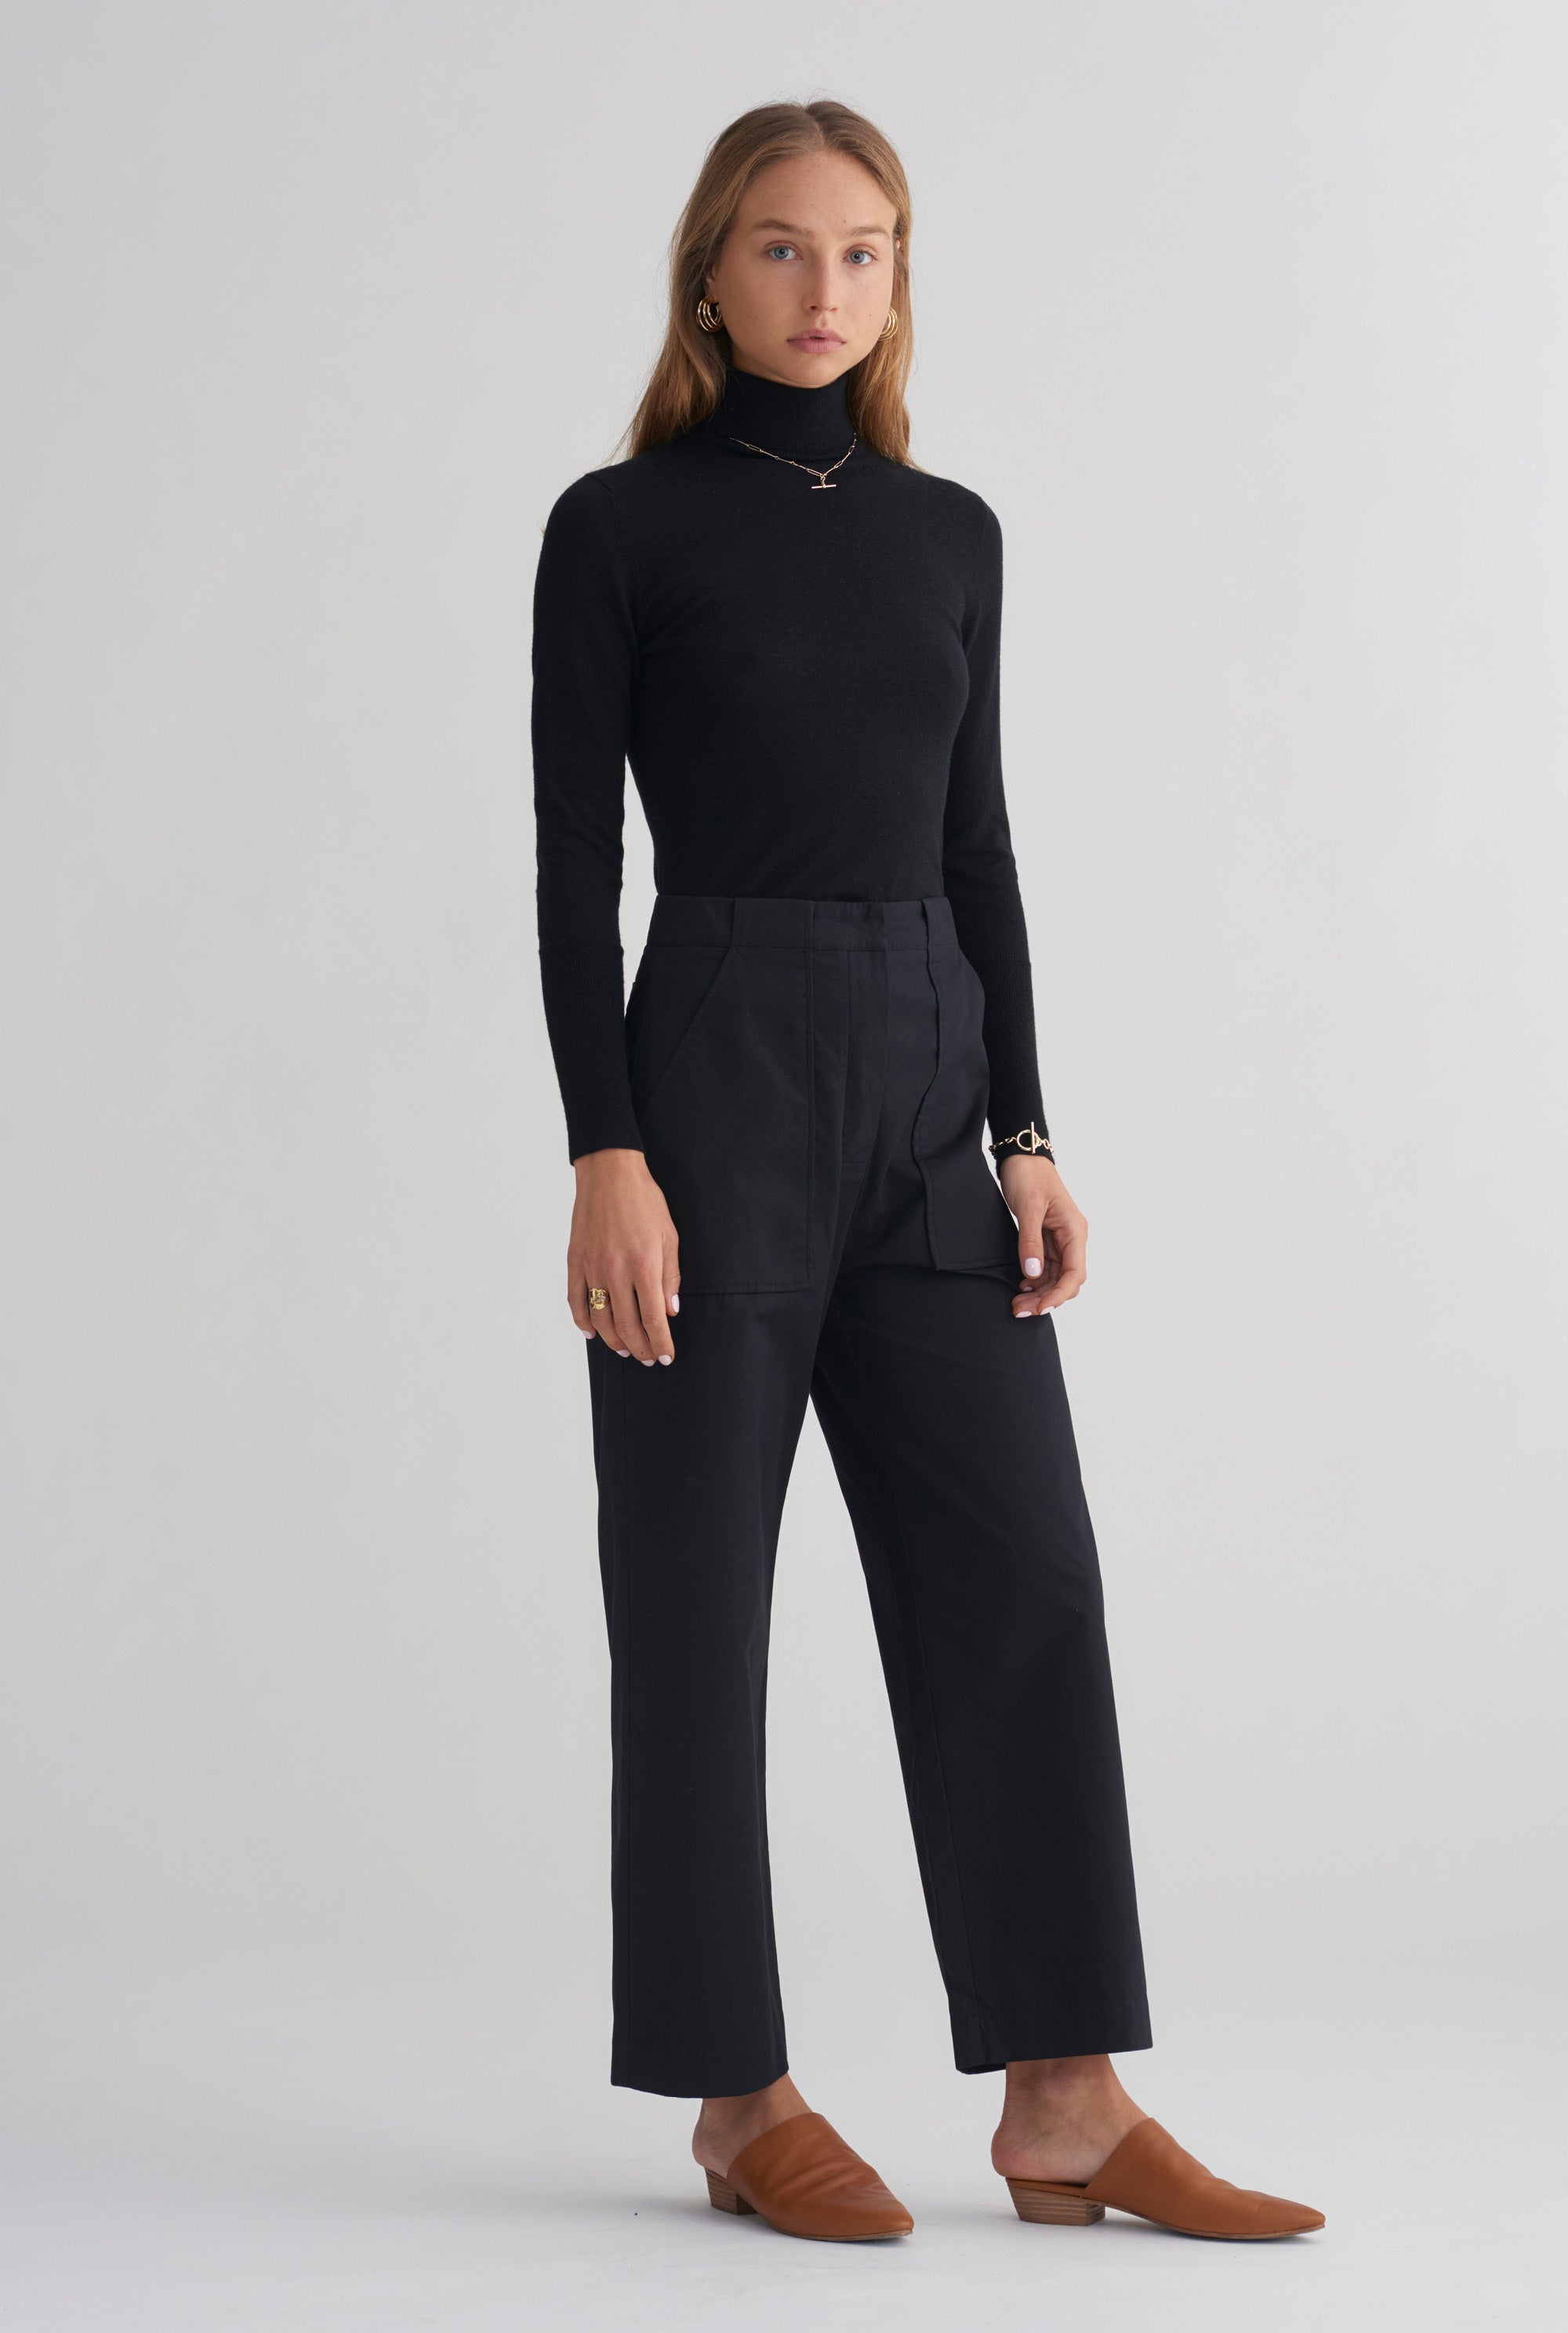 Cashmere Layering Knit - Black